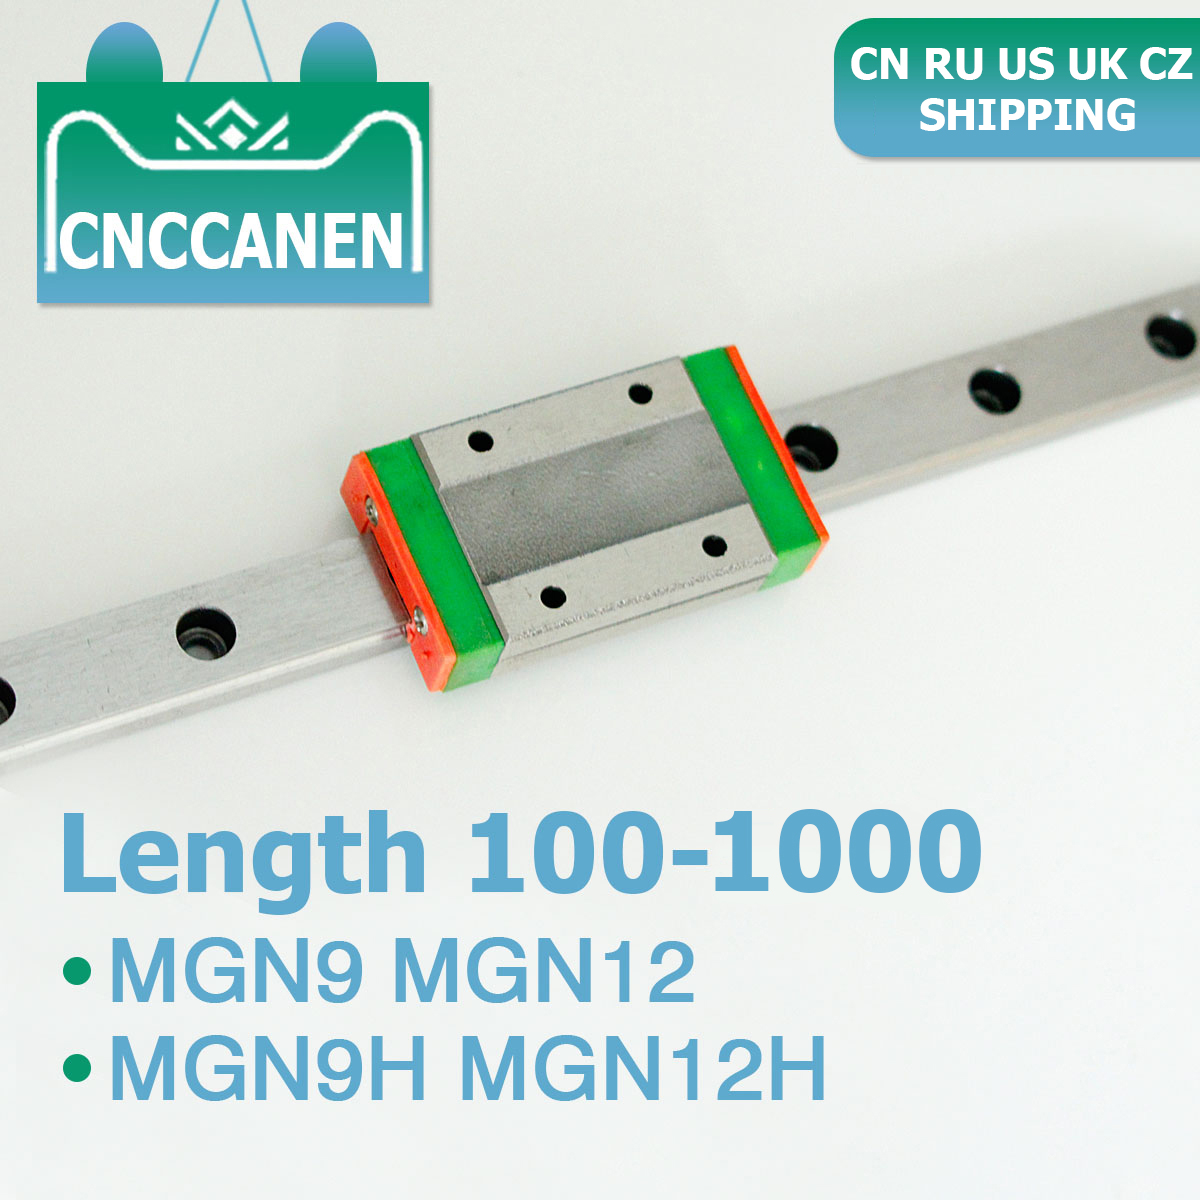 MGN12H Carriage Block for 3D Printer 5 Size Linear Guide Rail Way Slide